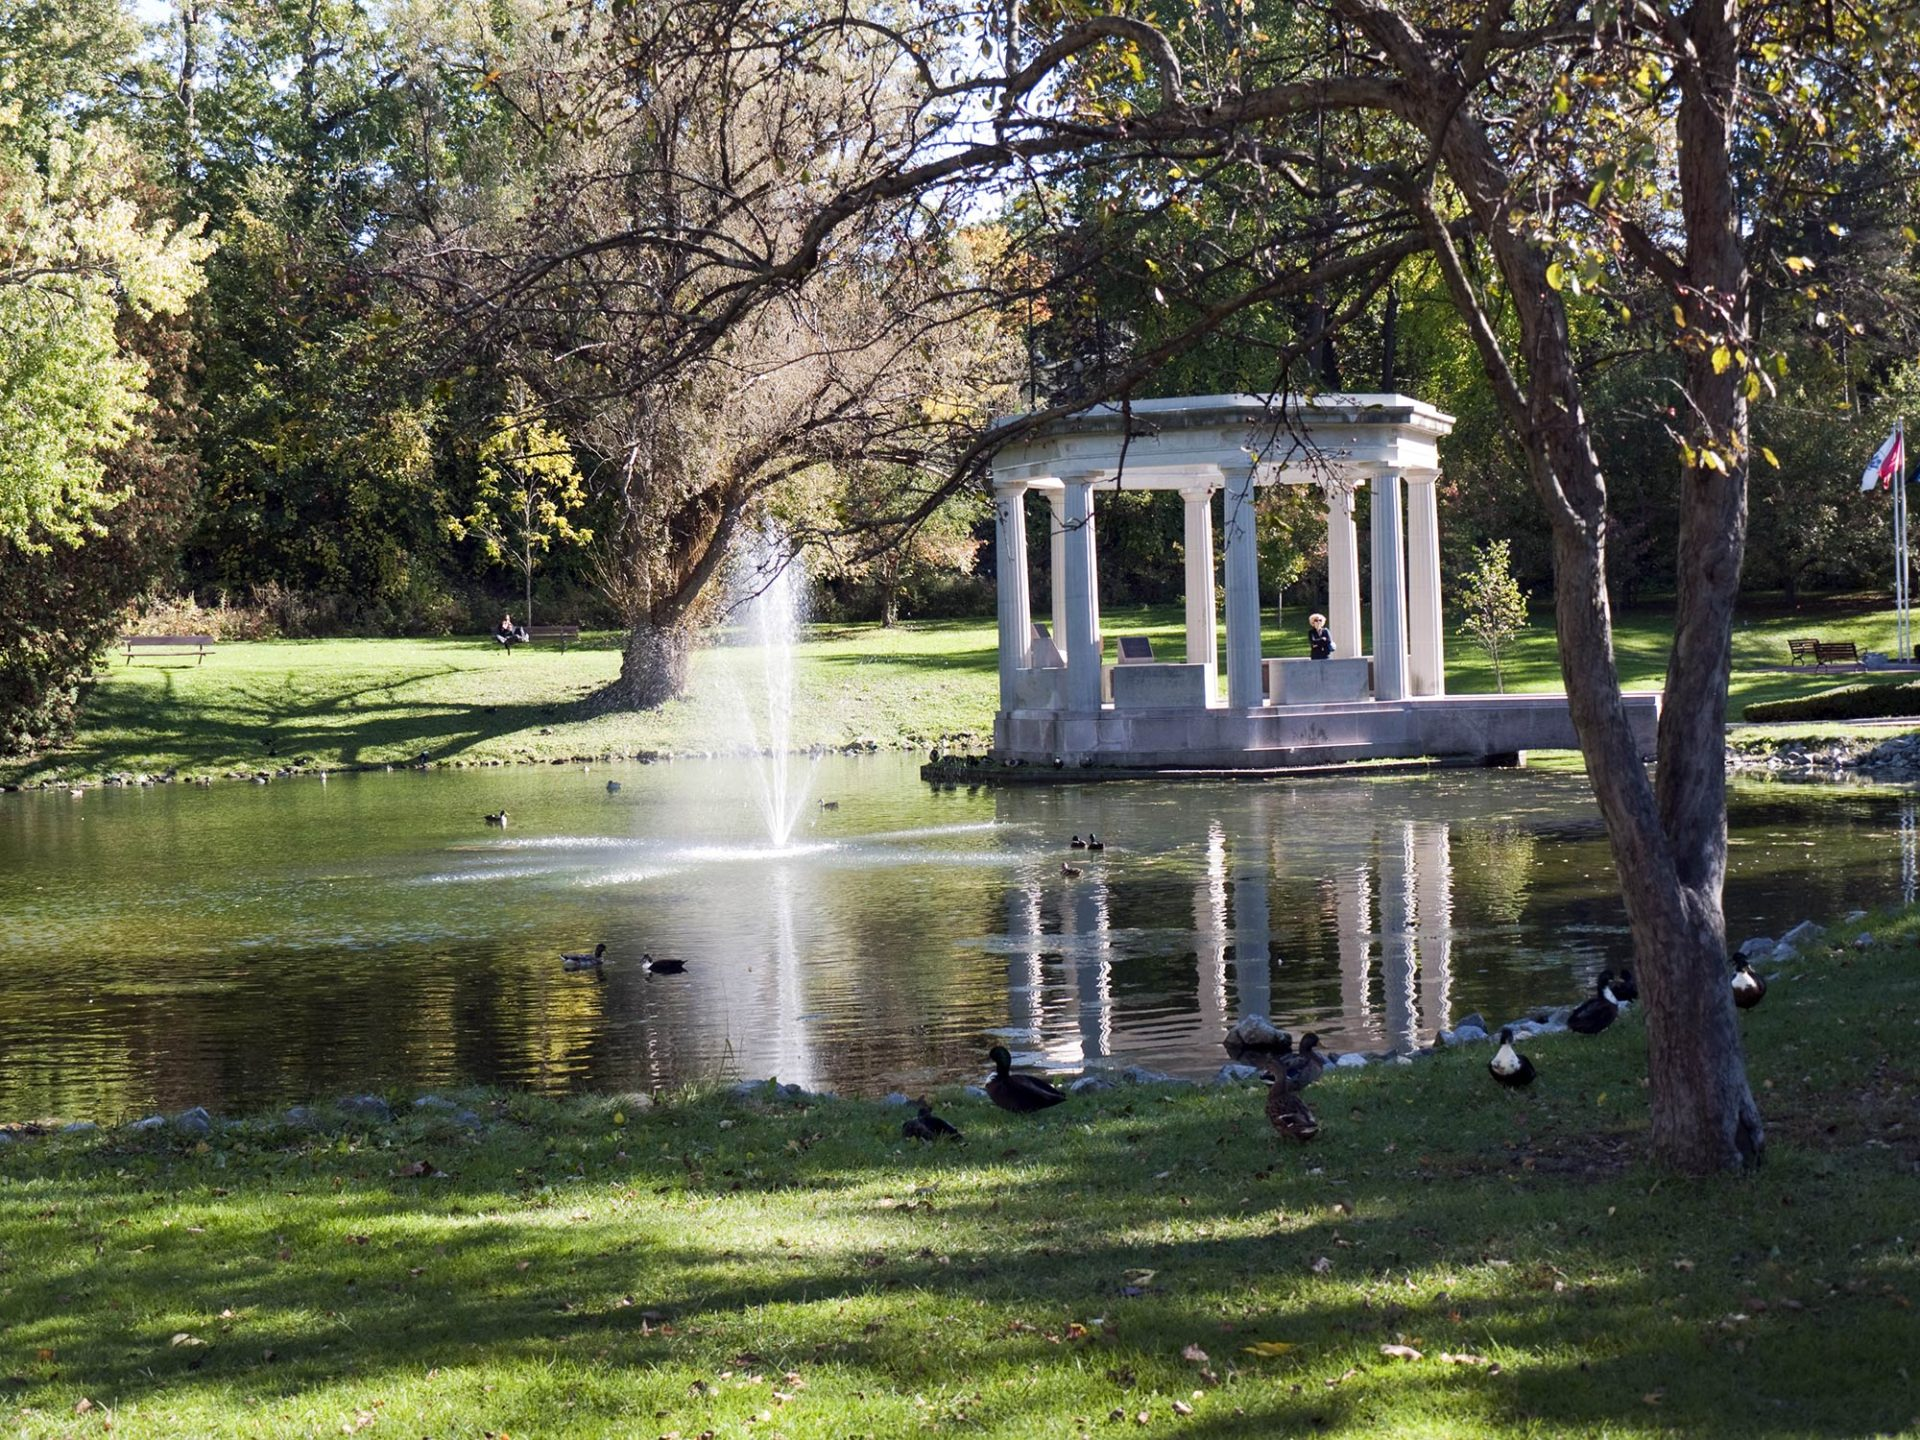 The hottest vacation spots are in the northeast - Saratoga Springs, New York